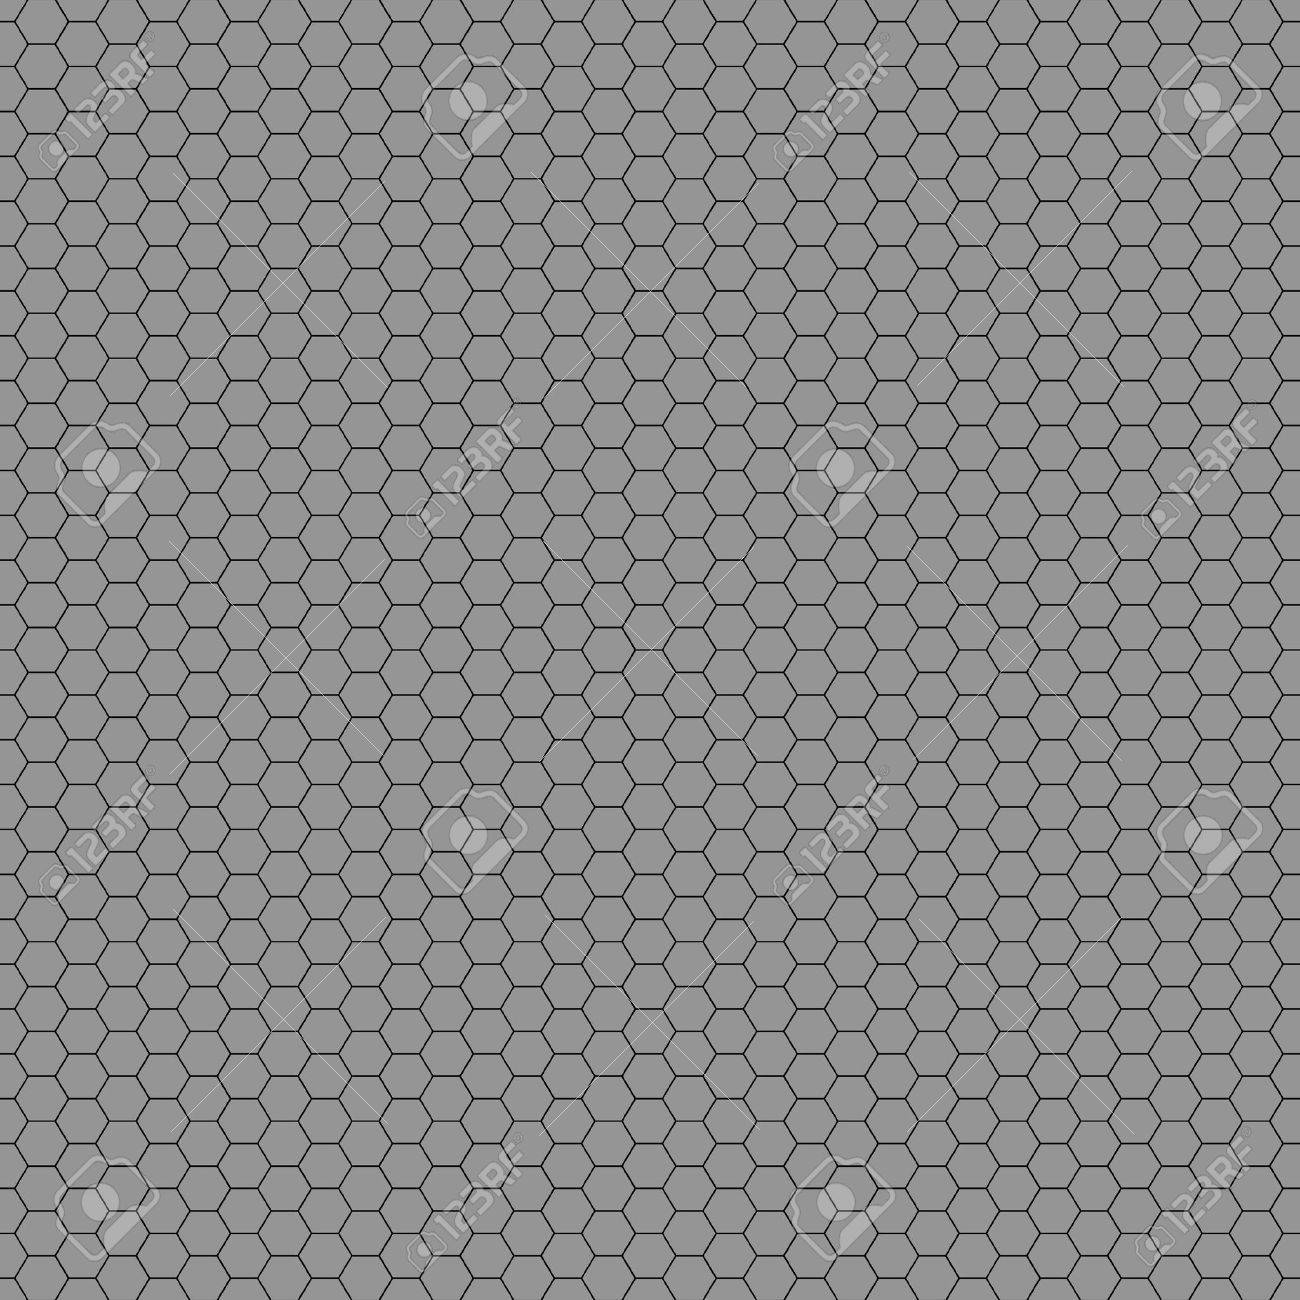 Seamless pattern with metal bars on a gray background Stock Vector - 12117434